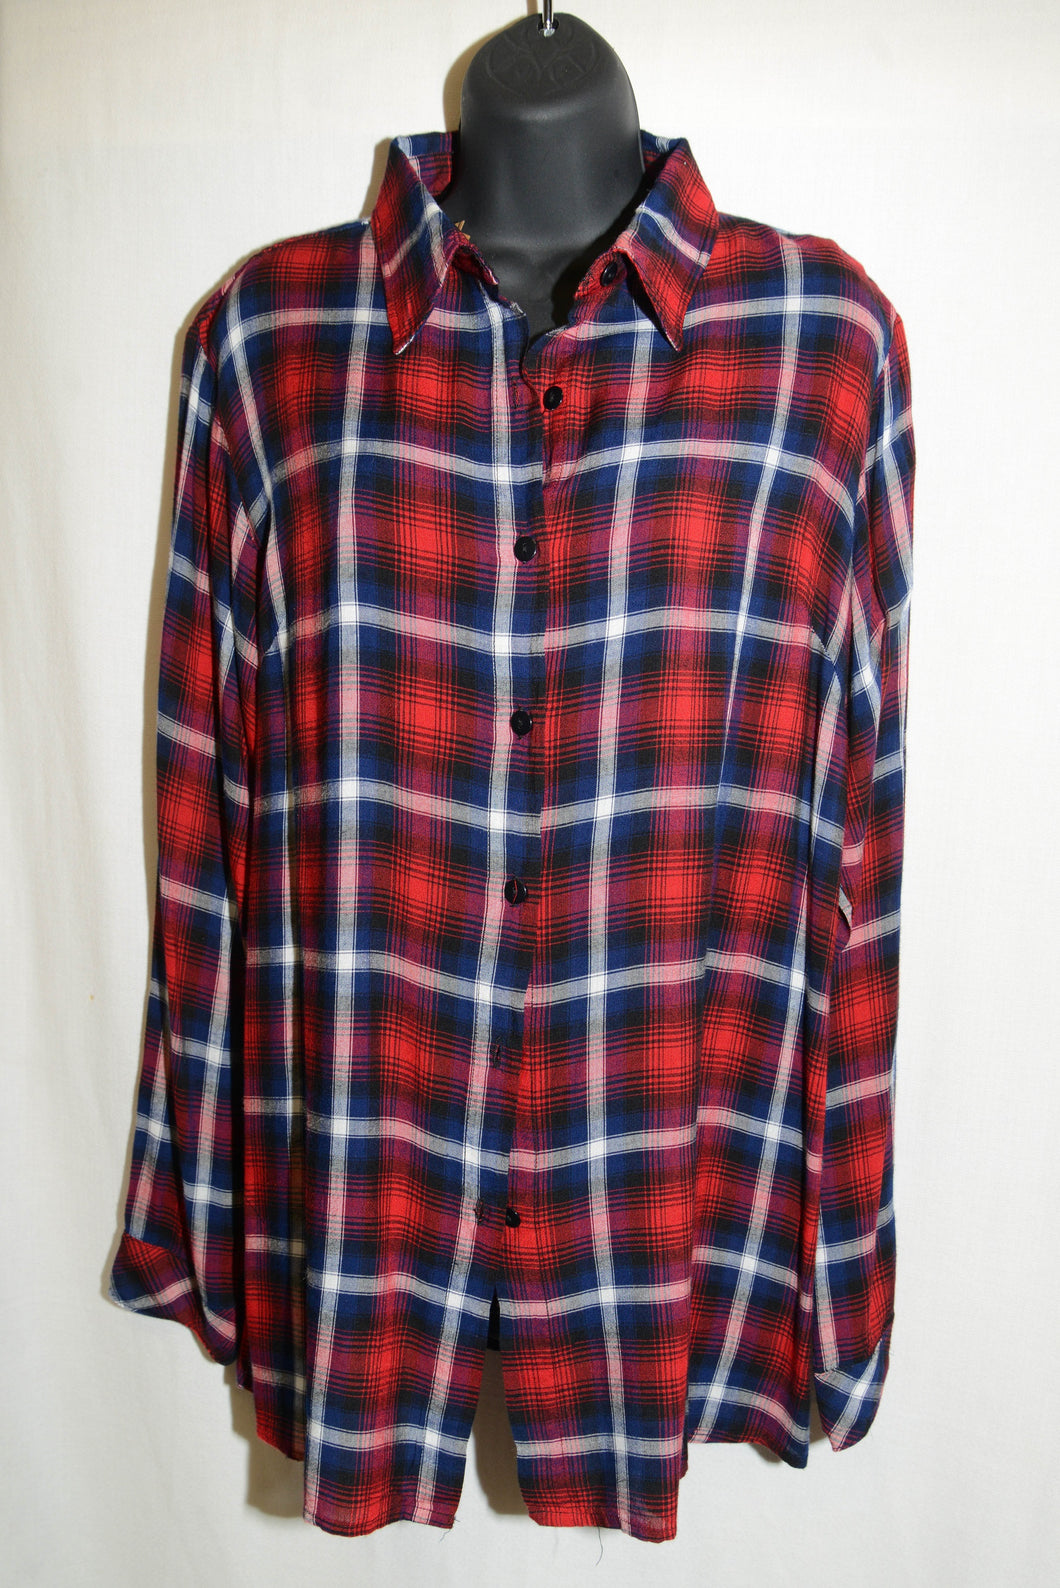 SALE - Ethyl Plaid Button Up